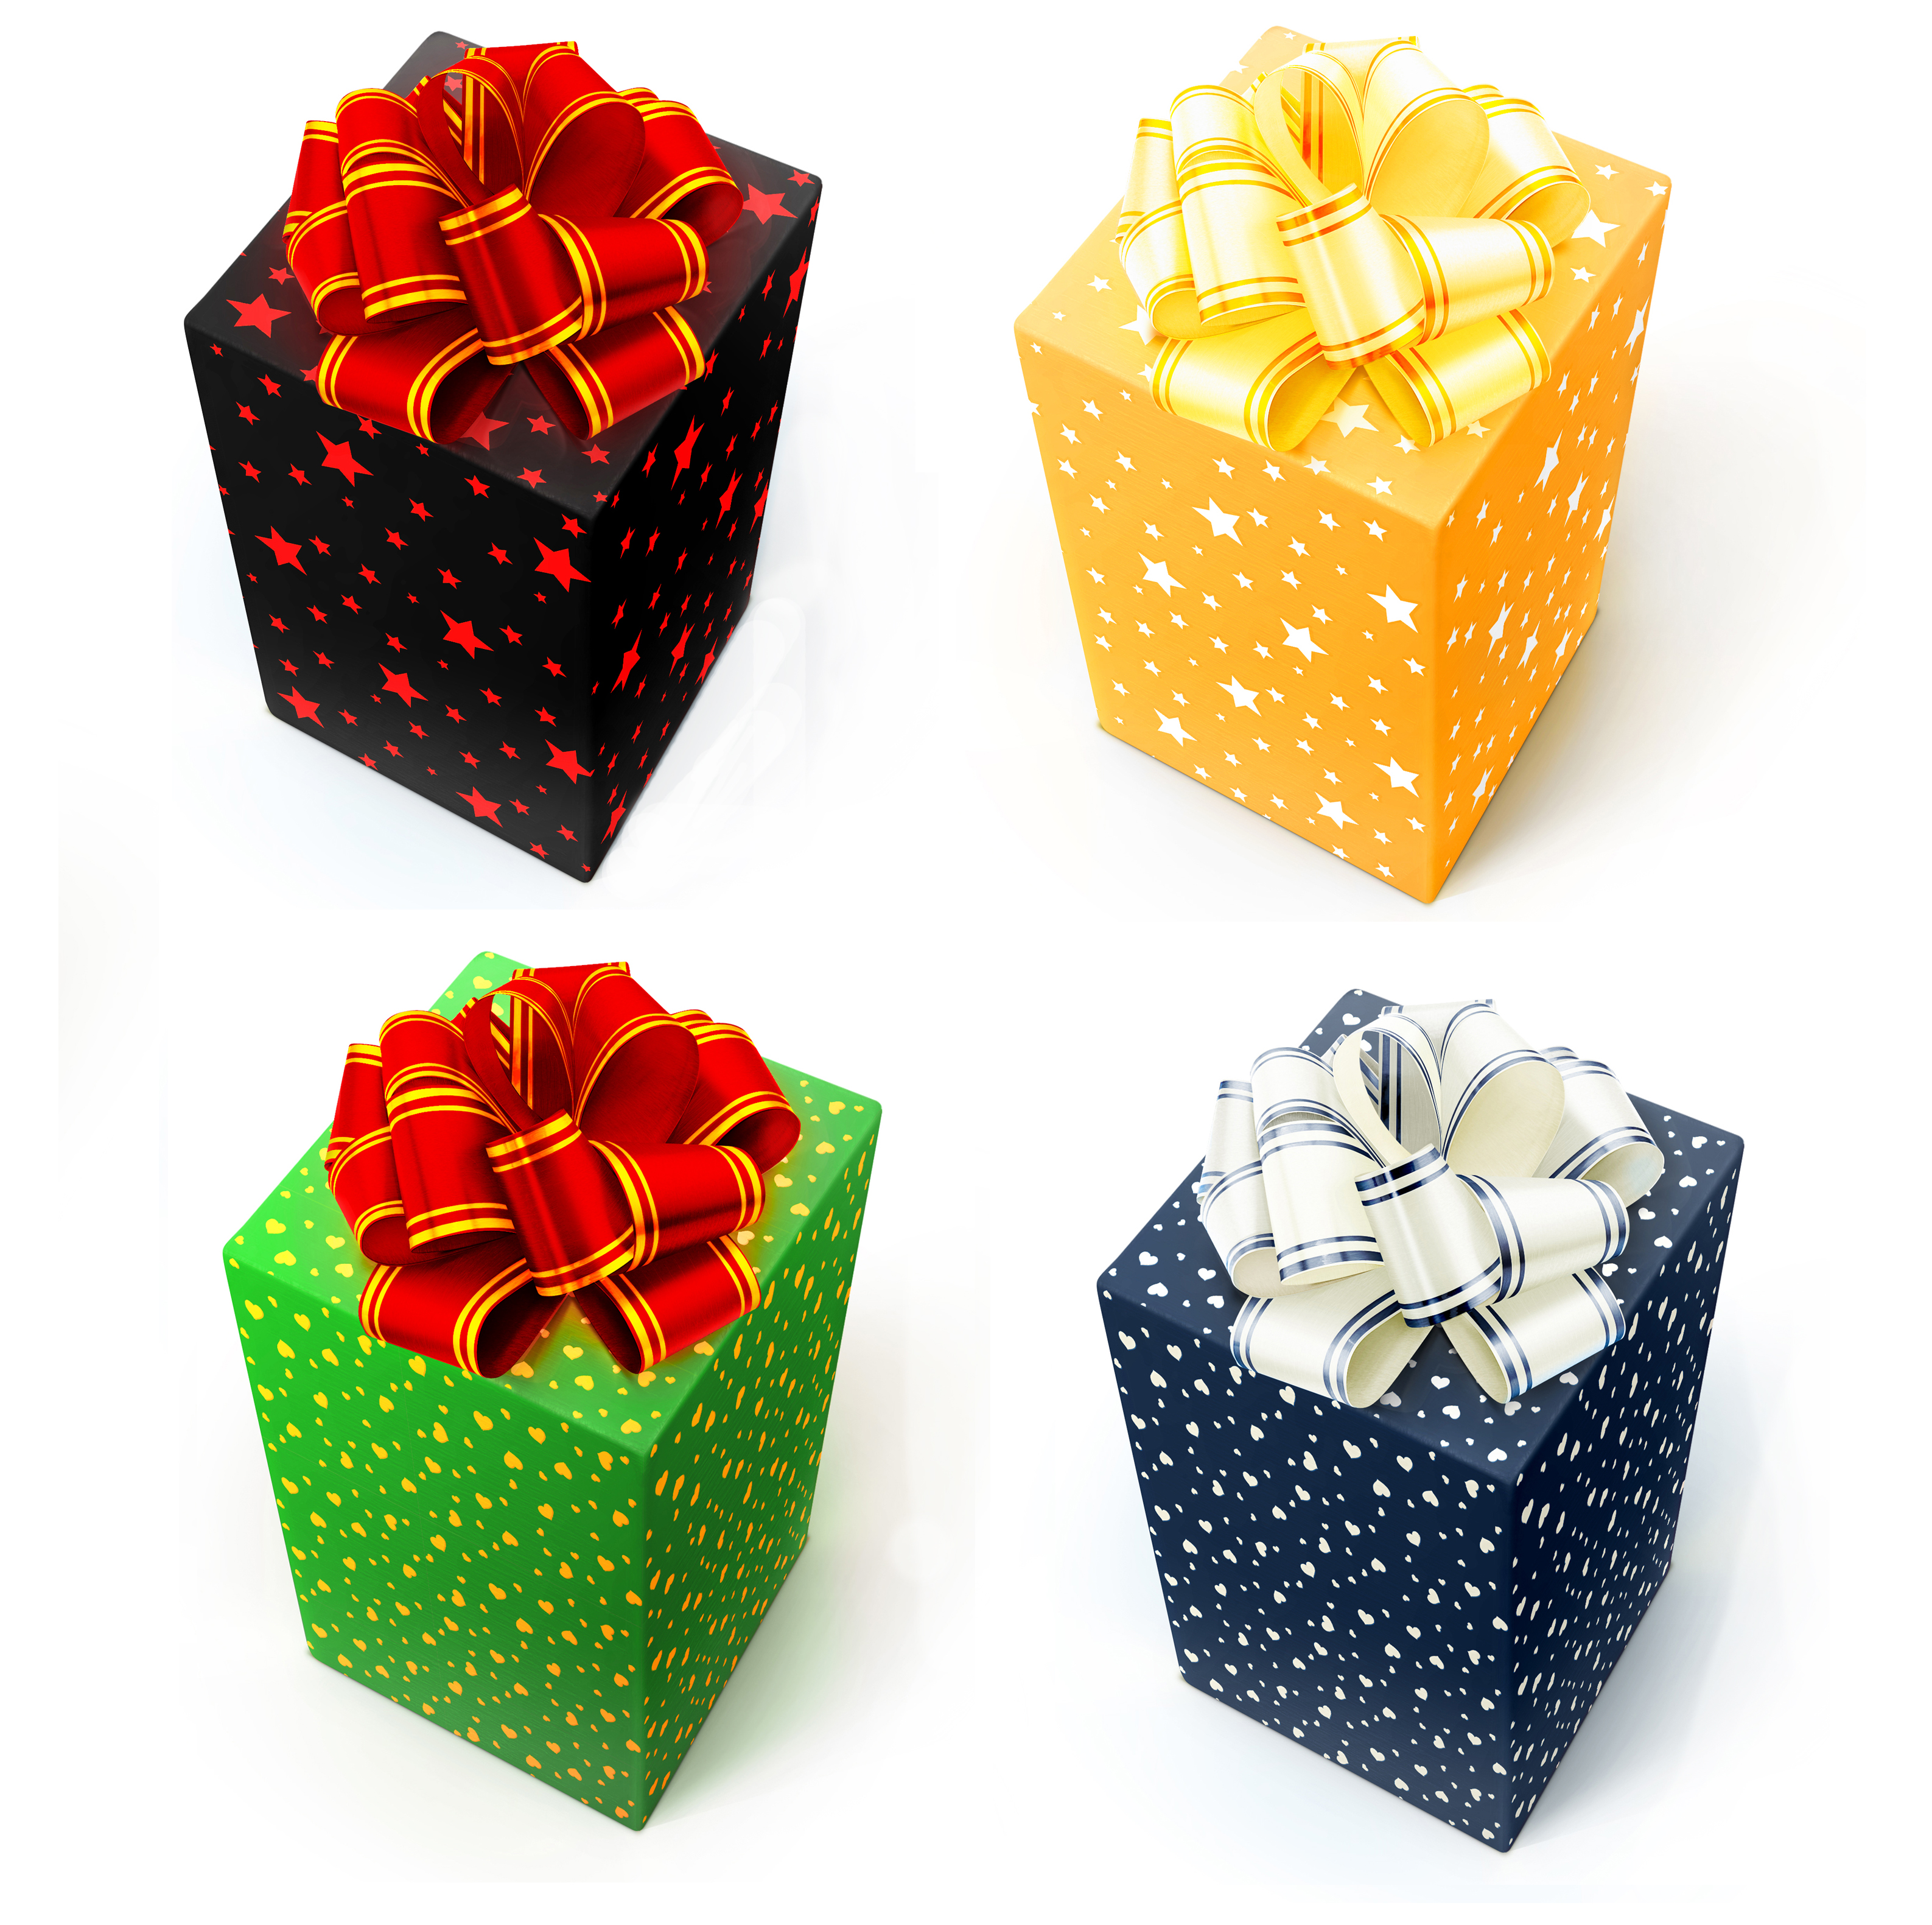 gift boxes with bows, Year, Ribbon, Image, Object, HQ Photo